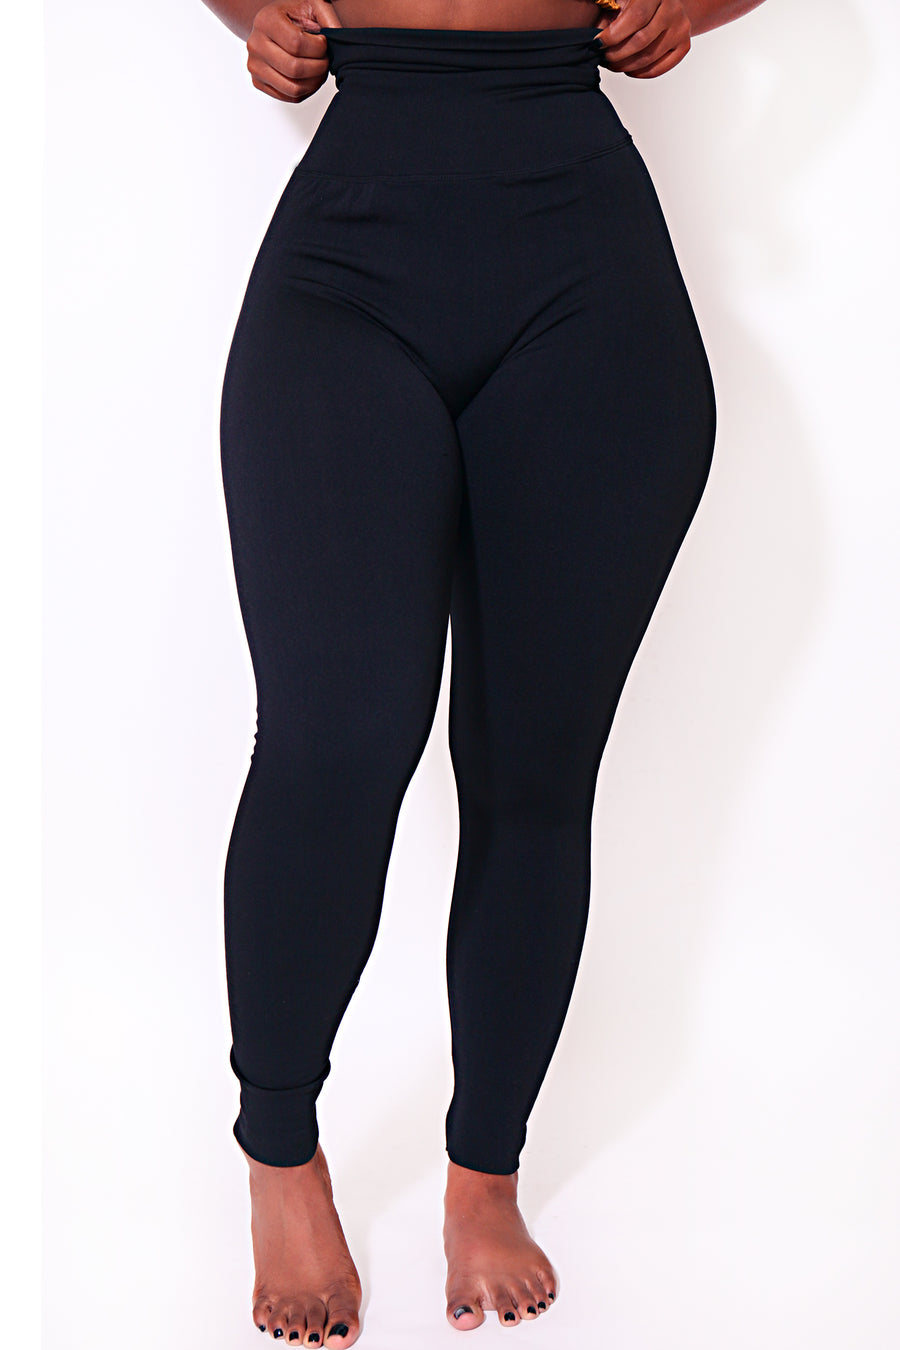 The Black Yoga Tummy Control Legging fits up to PLUS! (choose your size) - Babes And Felines | Specializing in Fashionable Staple Pieces for Every Shape and Size